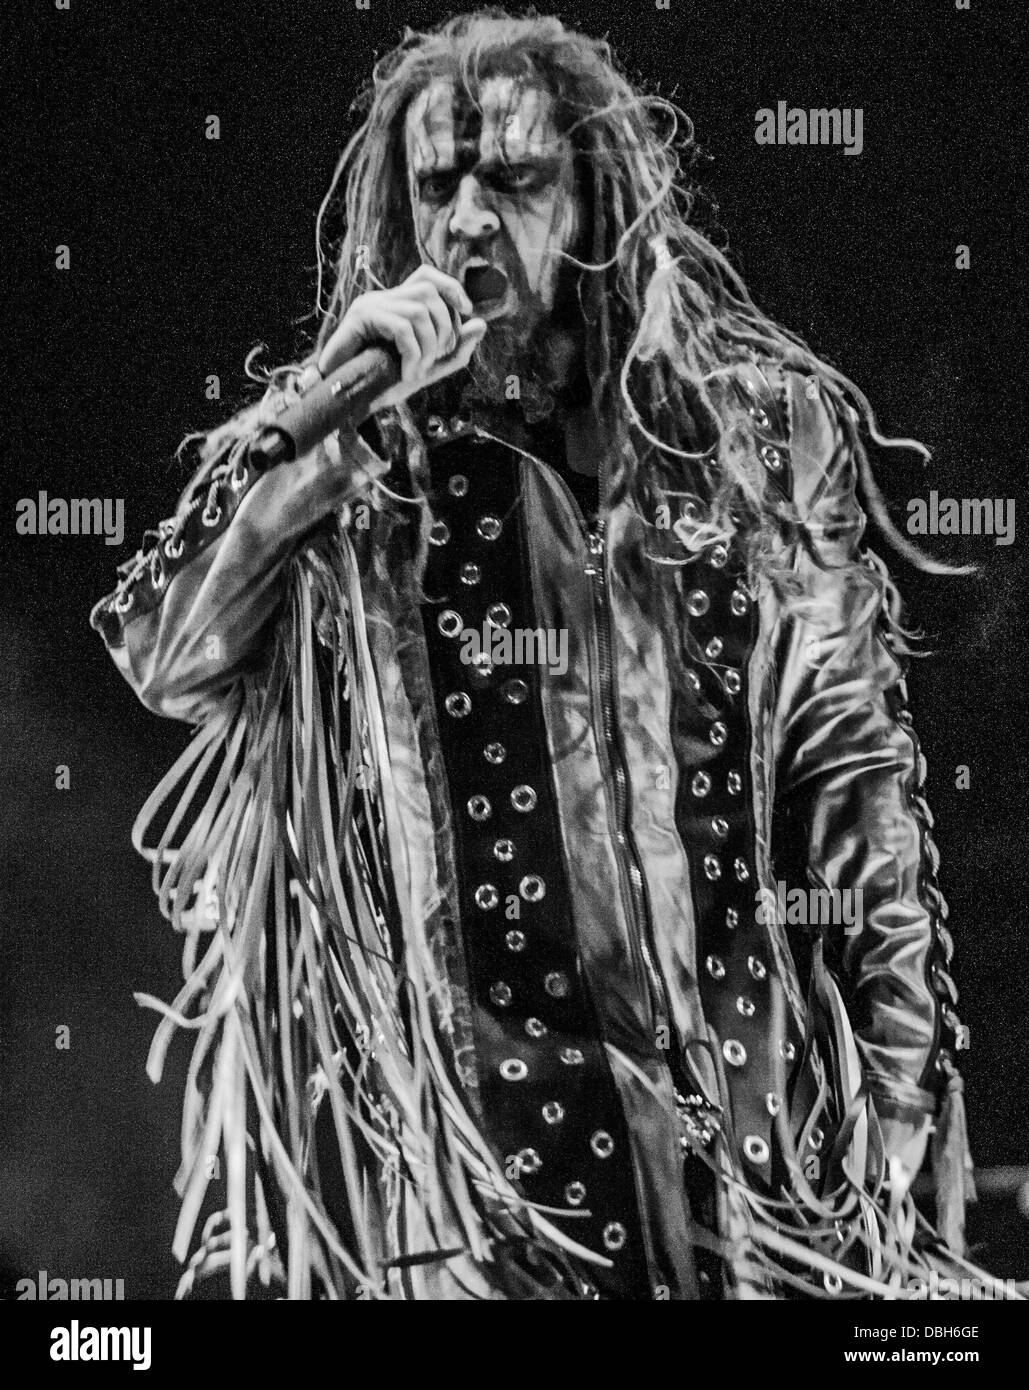 Heavy Metal horror band Rob Zombie performing live at Mayhem Fest 2013. Rob Zombie is the name of both the front - Stock Image